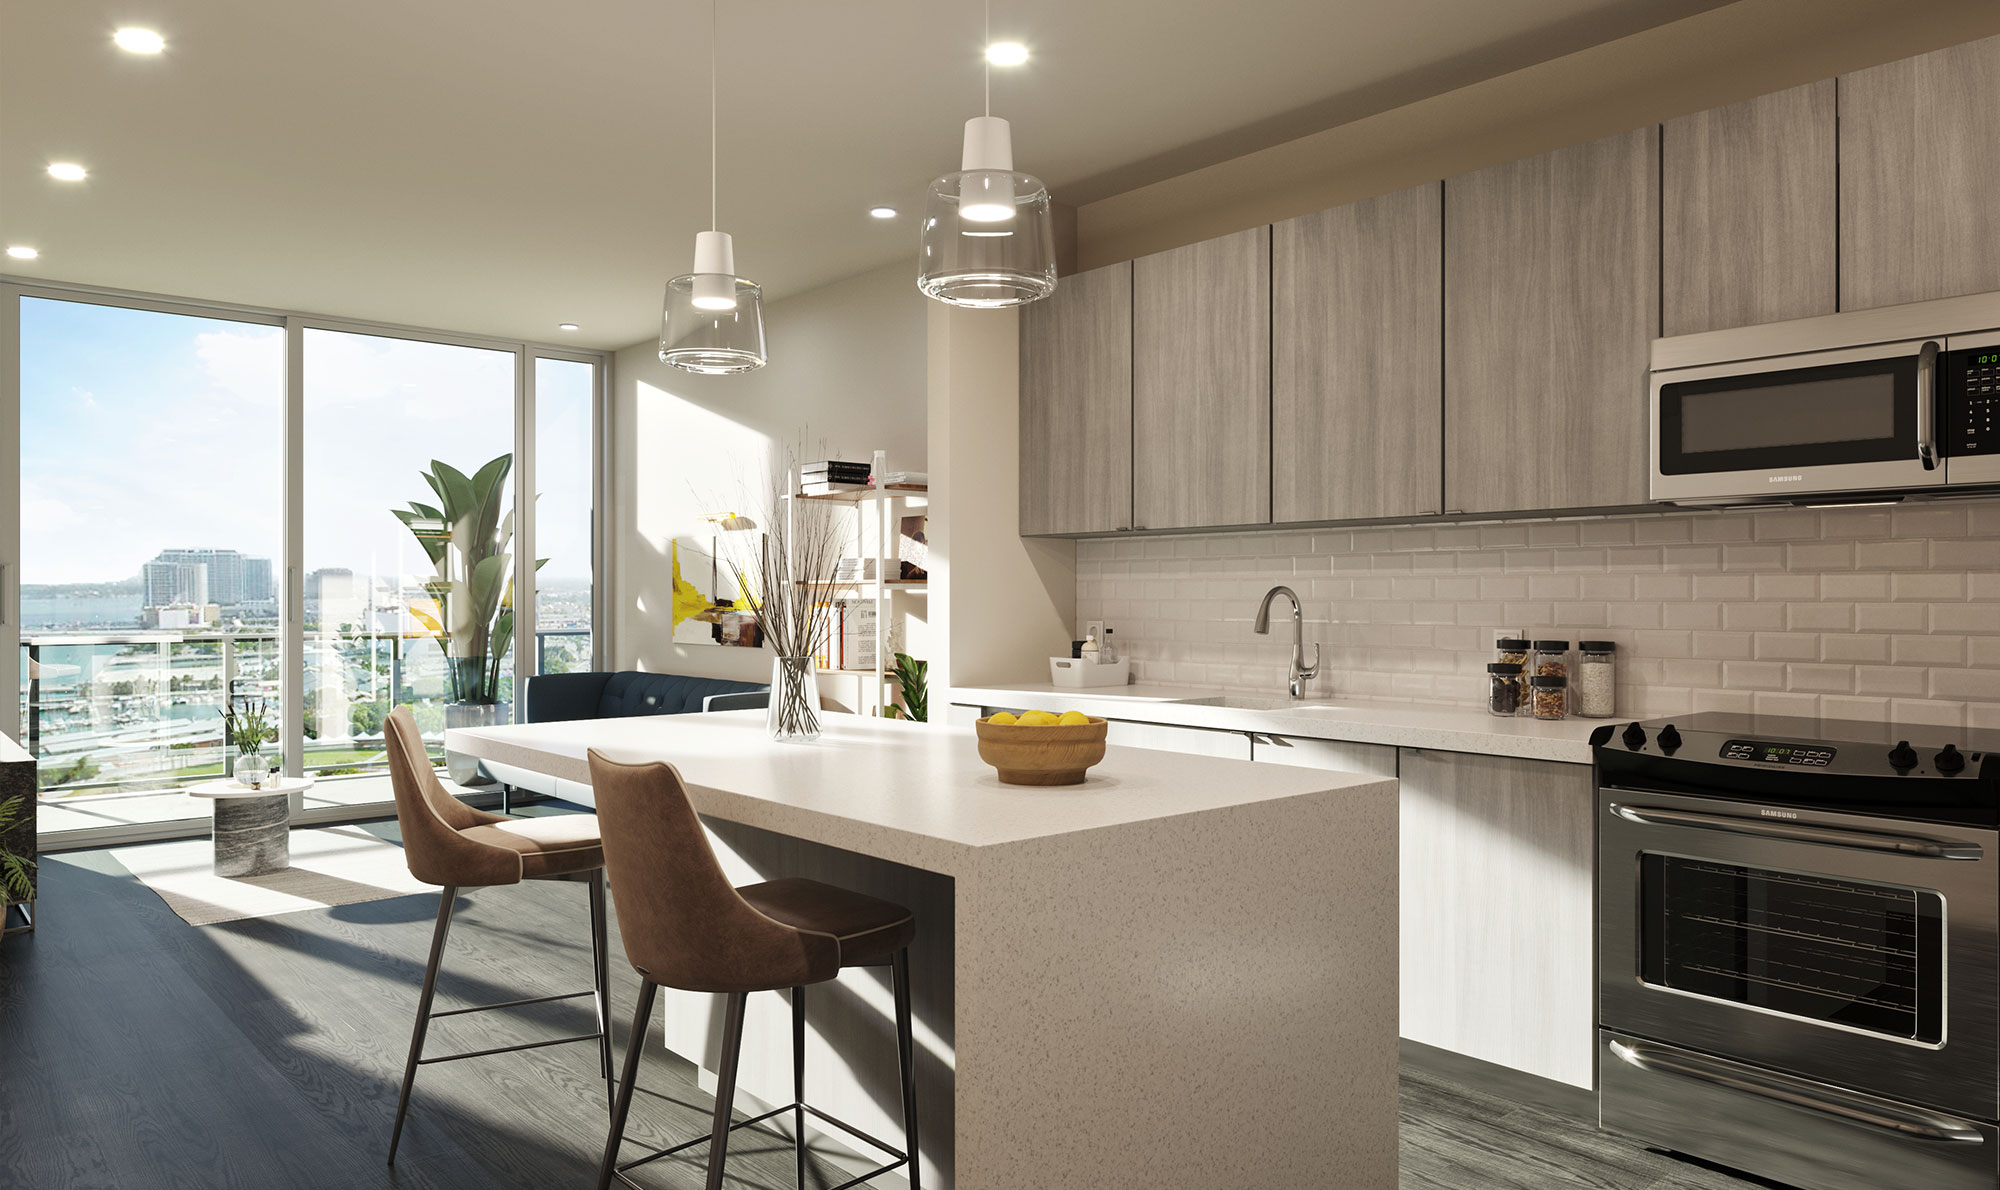 Open concept kitchen and living room with quartz countertops, kitchen island with bar seating, designer lighting, and tile backsplash